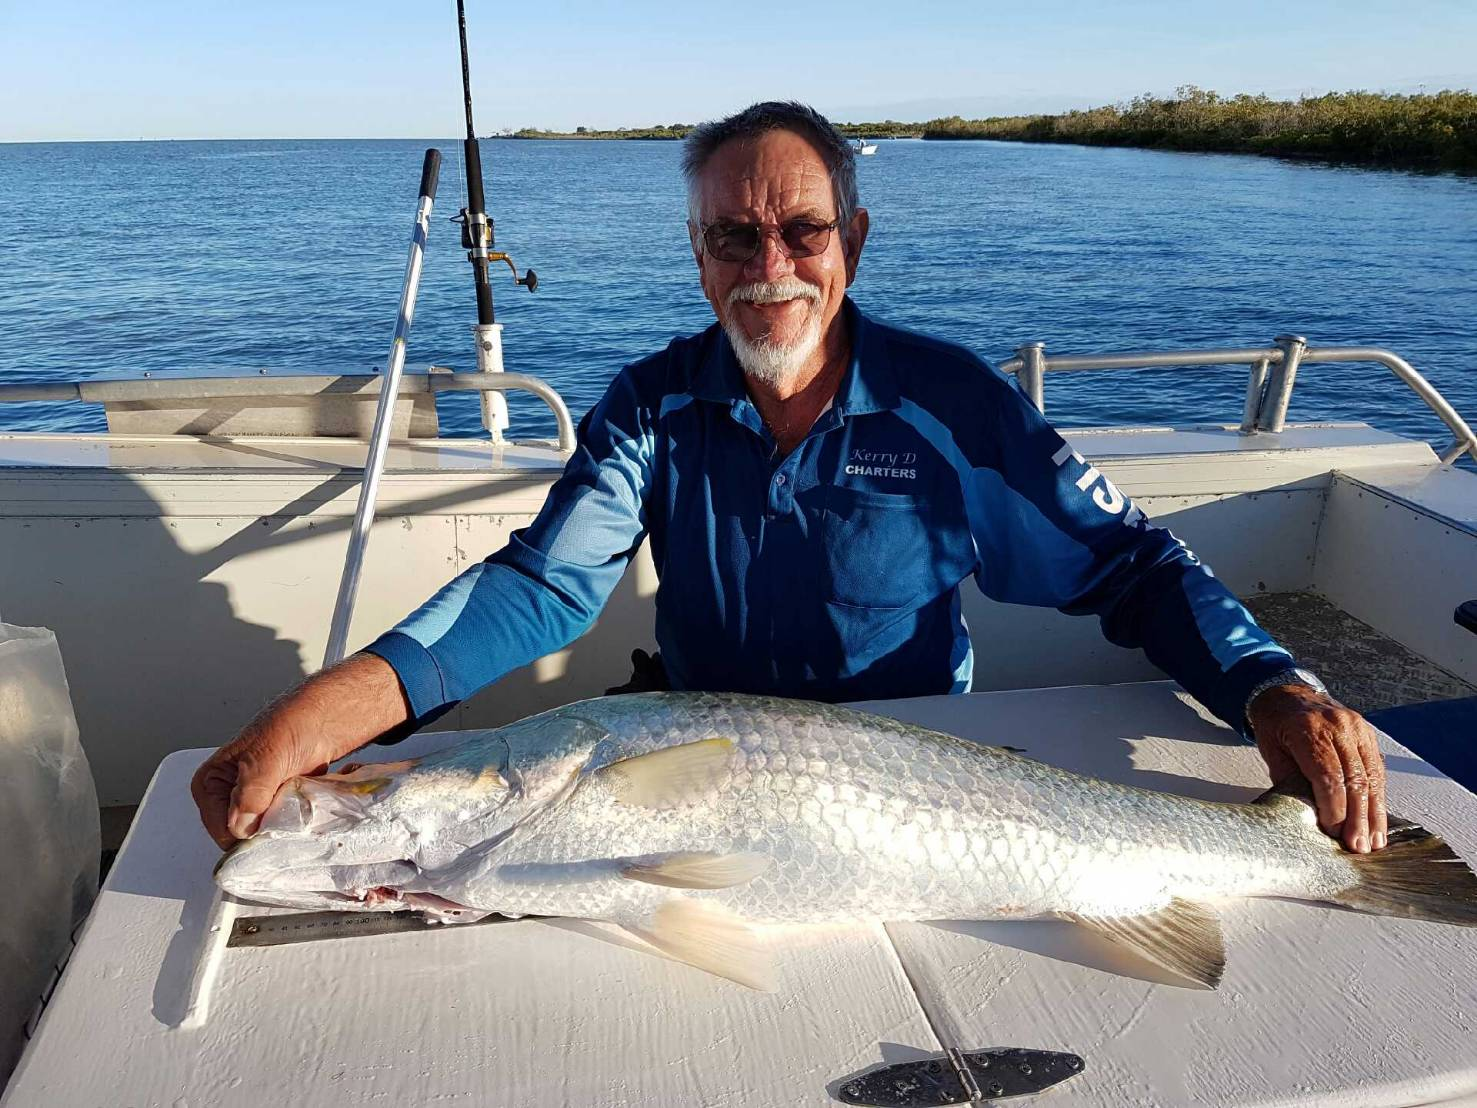 Paul the Captain of Kery D. Great big Barra and a great guy.